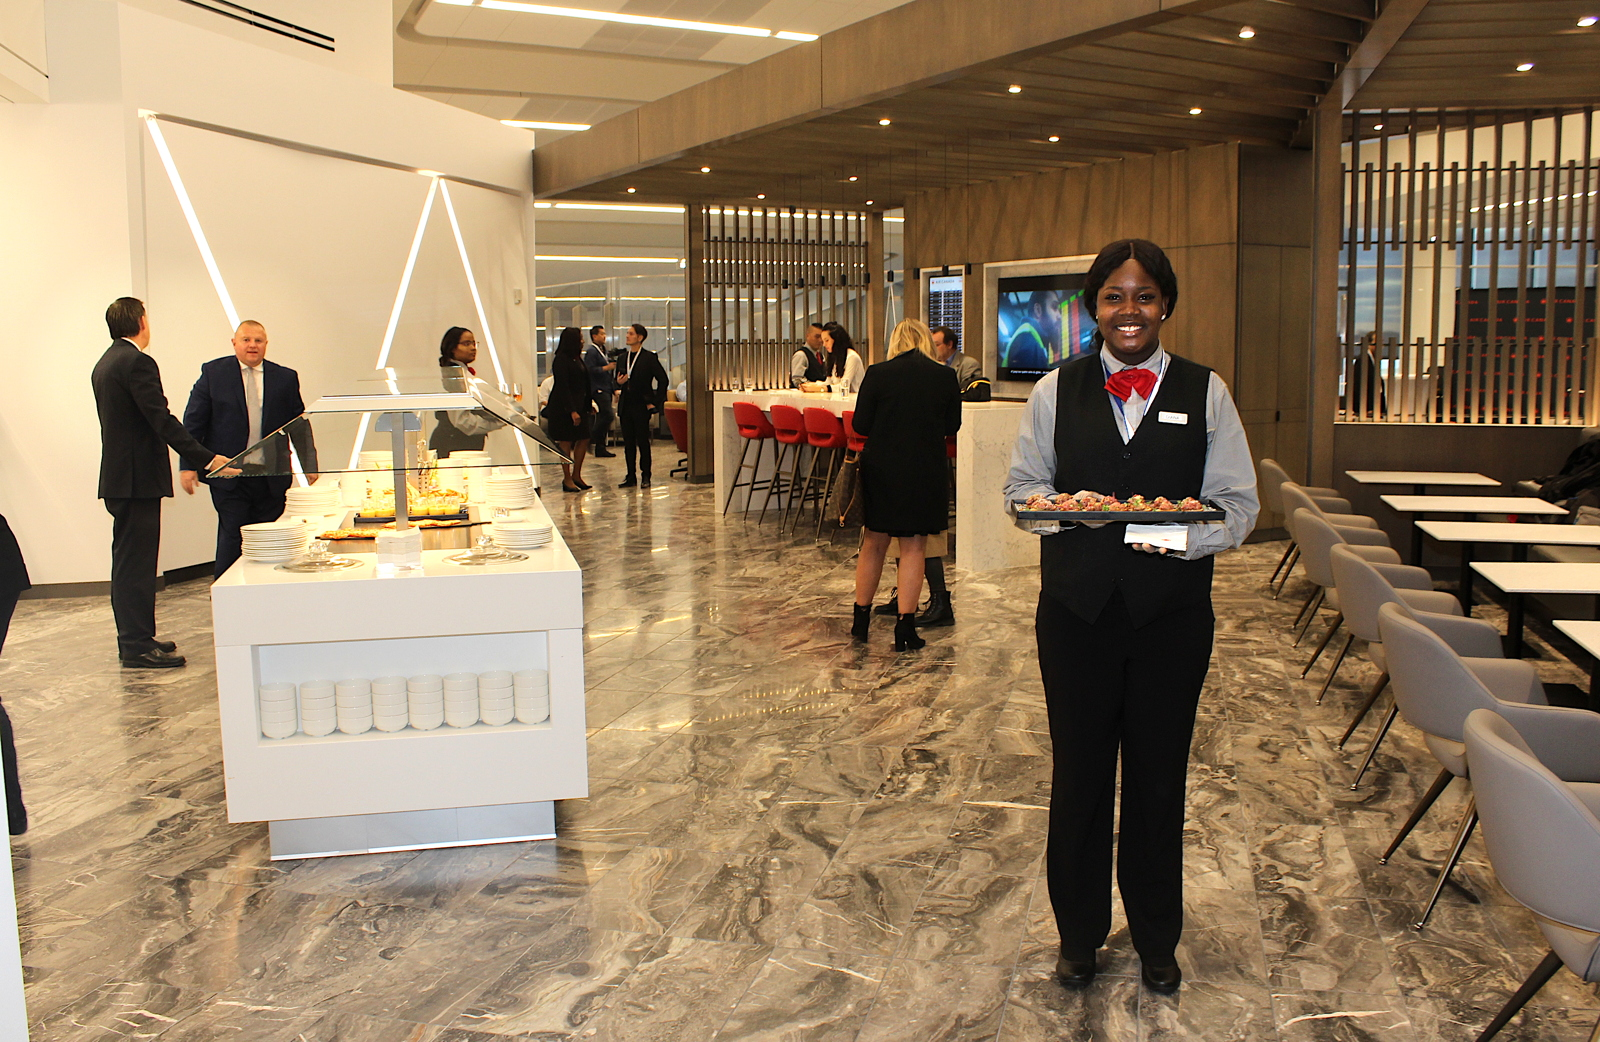 Welcome to the new LaGuardia Maple Leaf Lounge, now open on Level Two at LGA's Terminal B concourse.